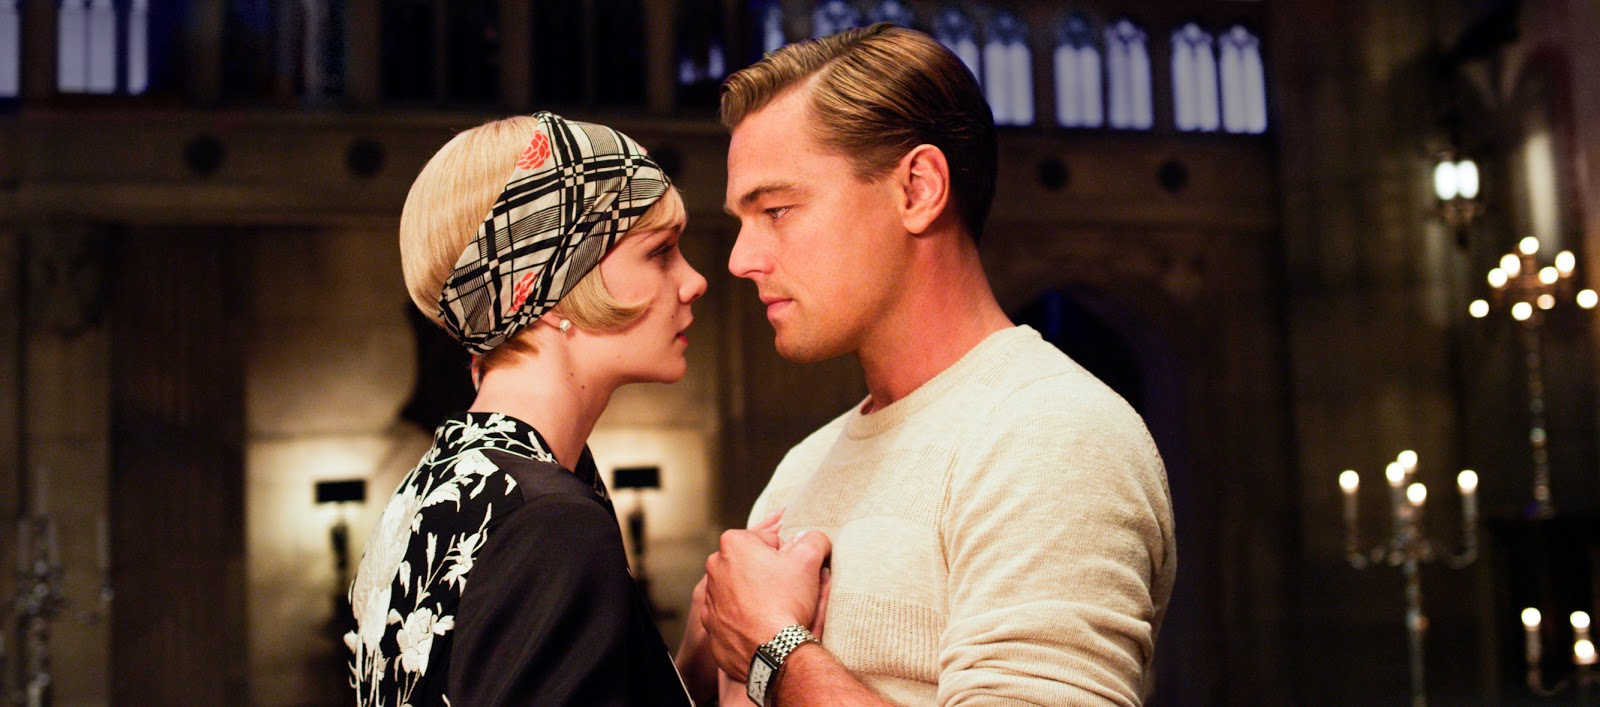 the-great-gatsby-leonardo-dicaprio-carey-mulligan-official-movie-image